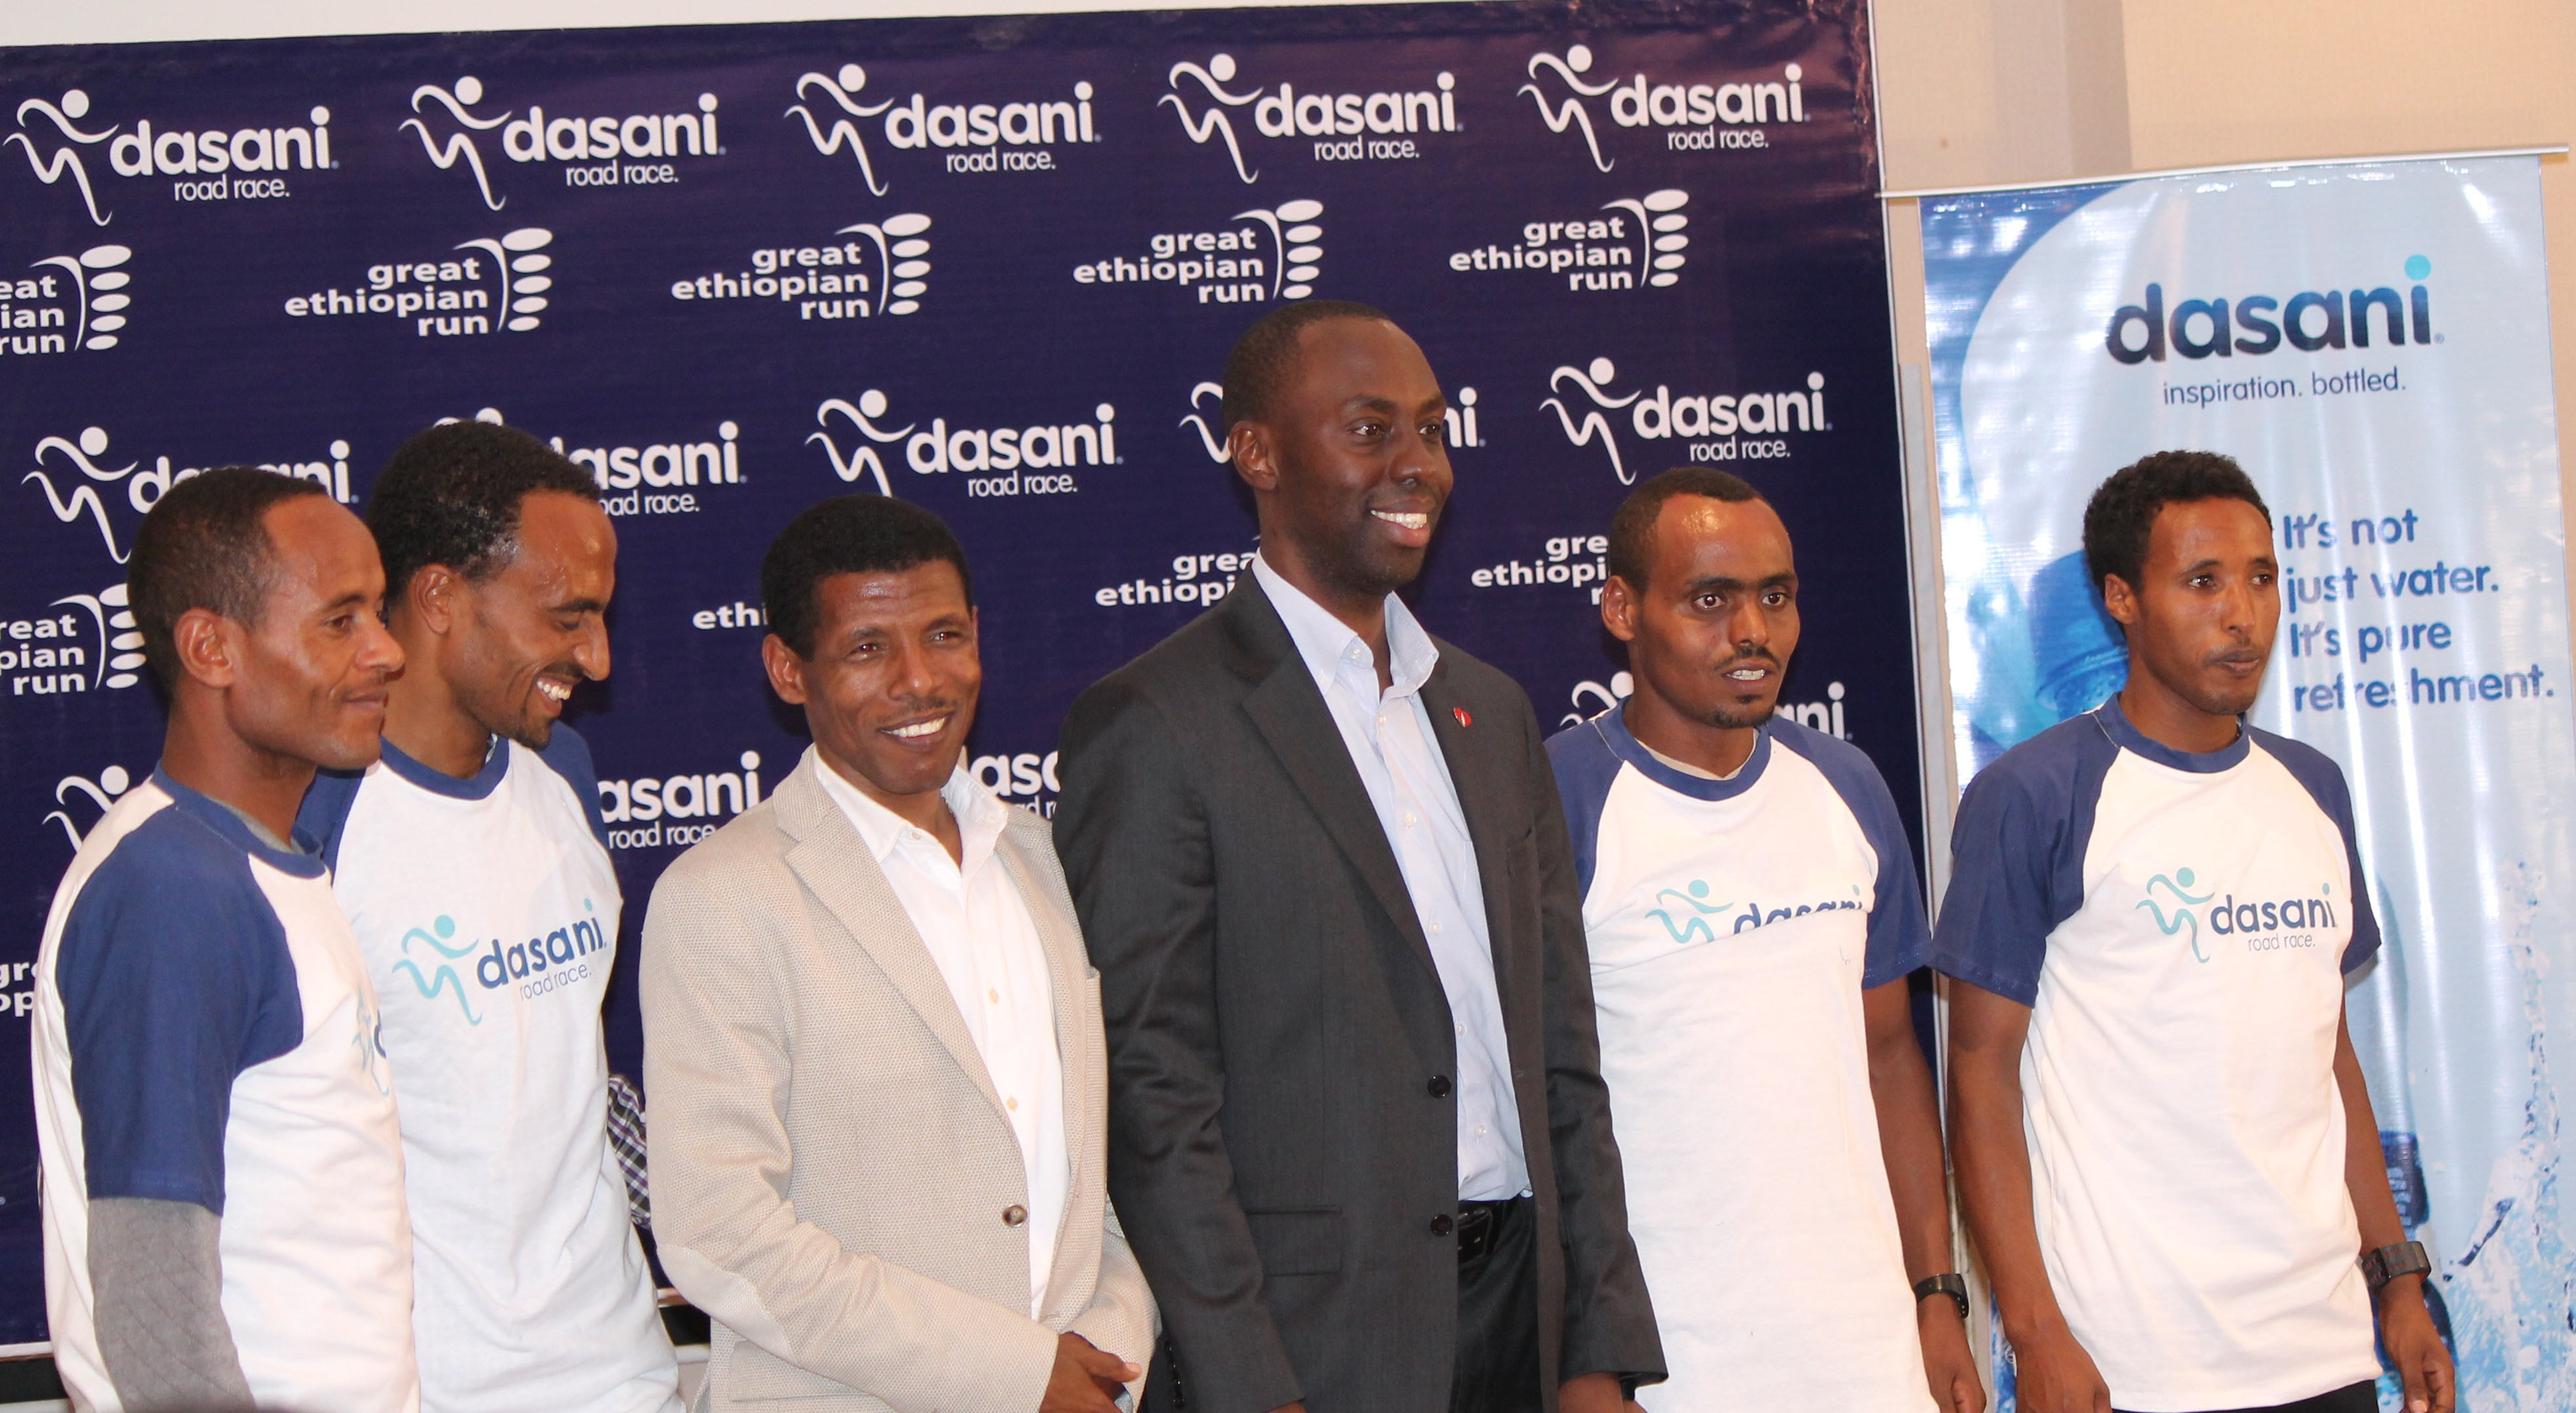 Haile and EABSC Commercial manager hand over the race t-shirt for the athletes